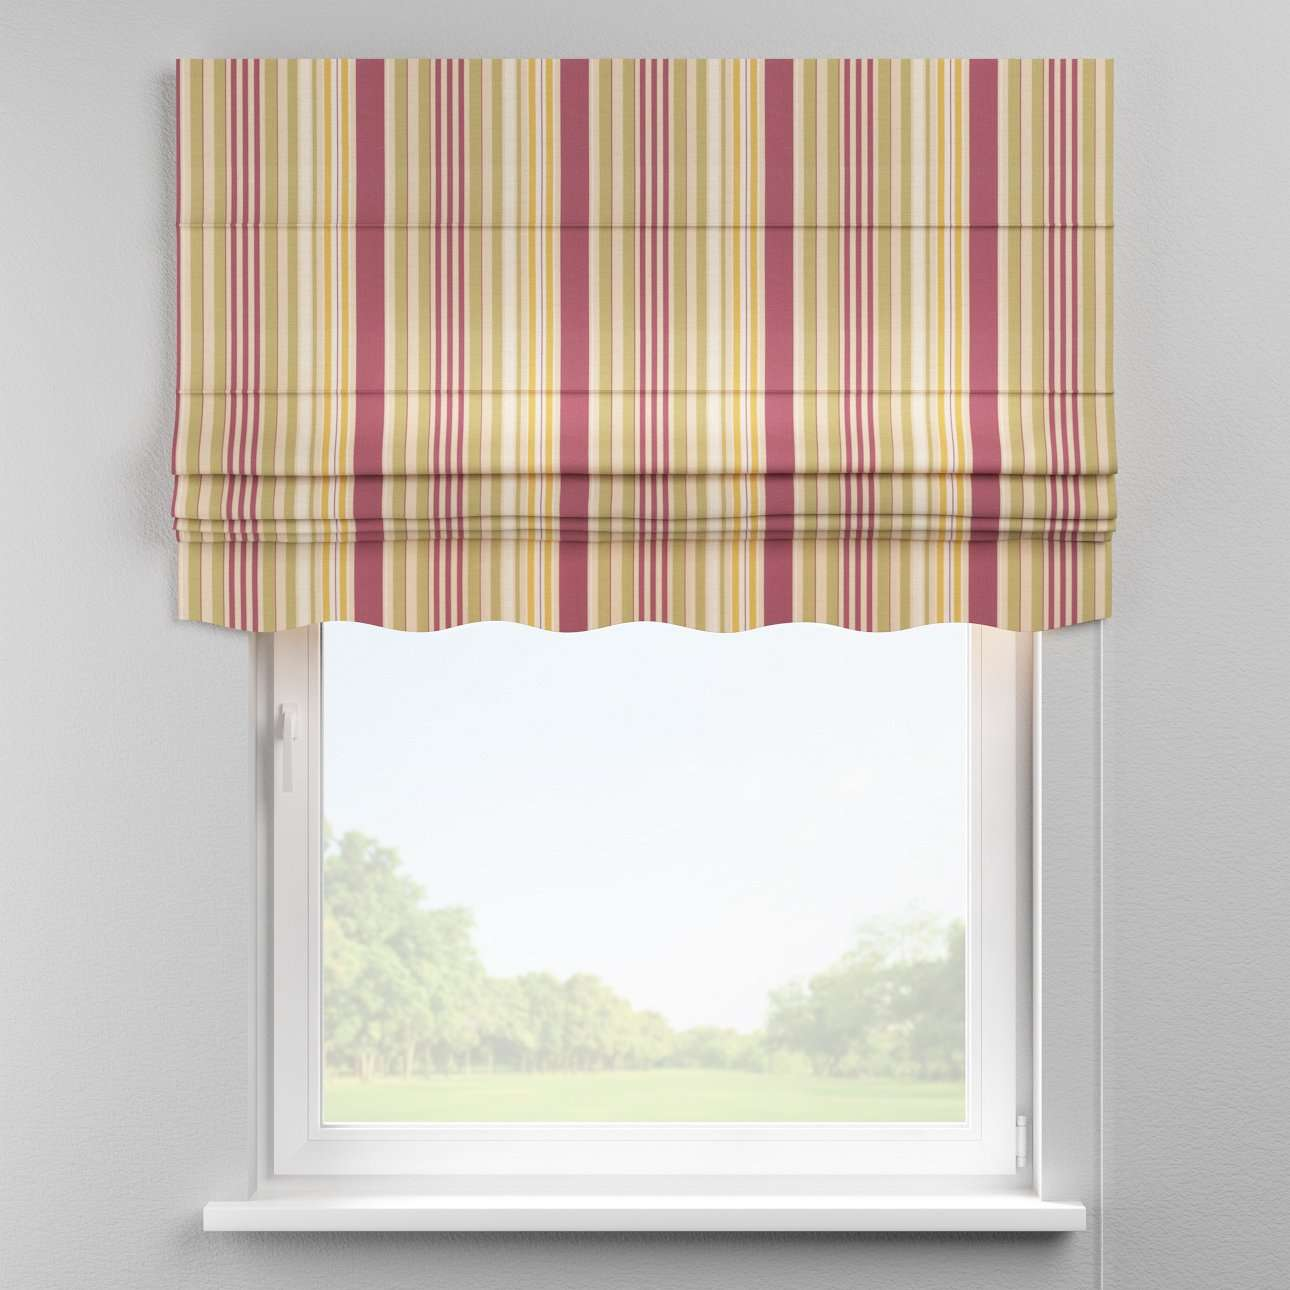 Florence roman blind  80 x 170 cm (31.5 x 67 inch) in collection Londres, fabric: 122-09